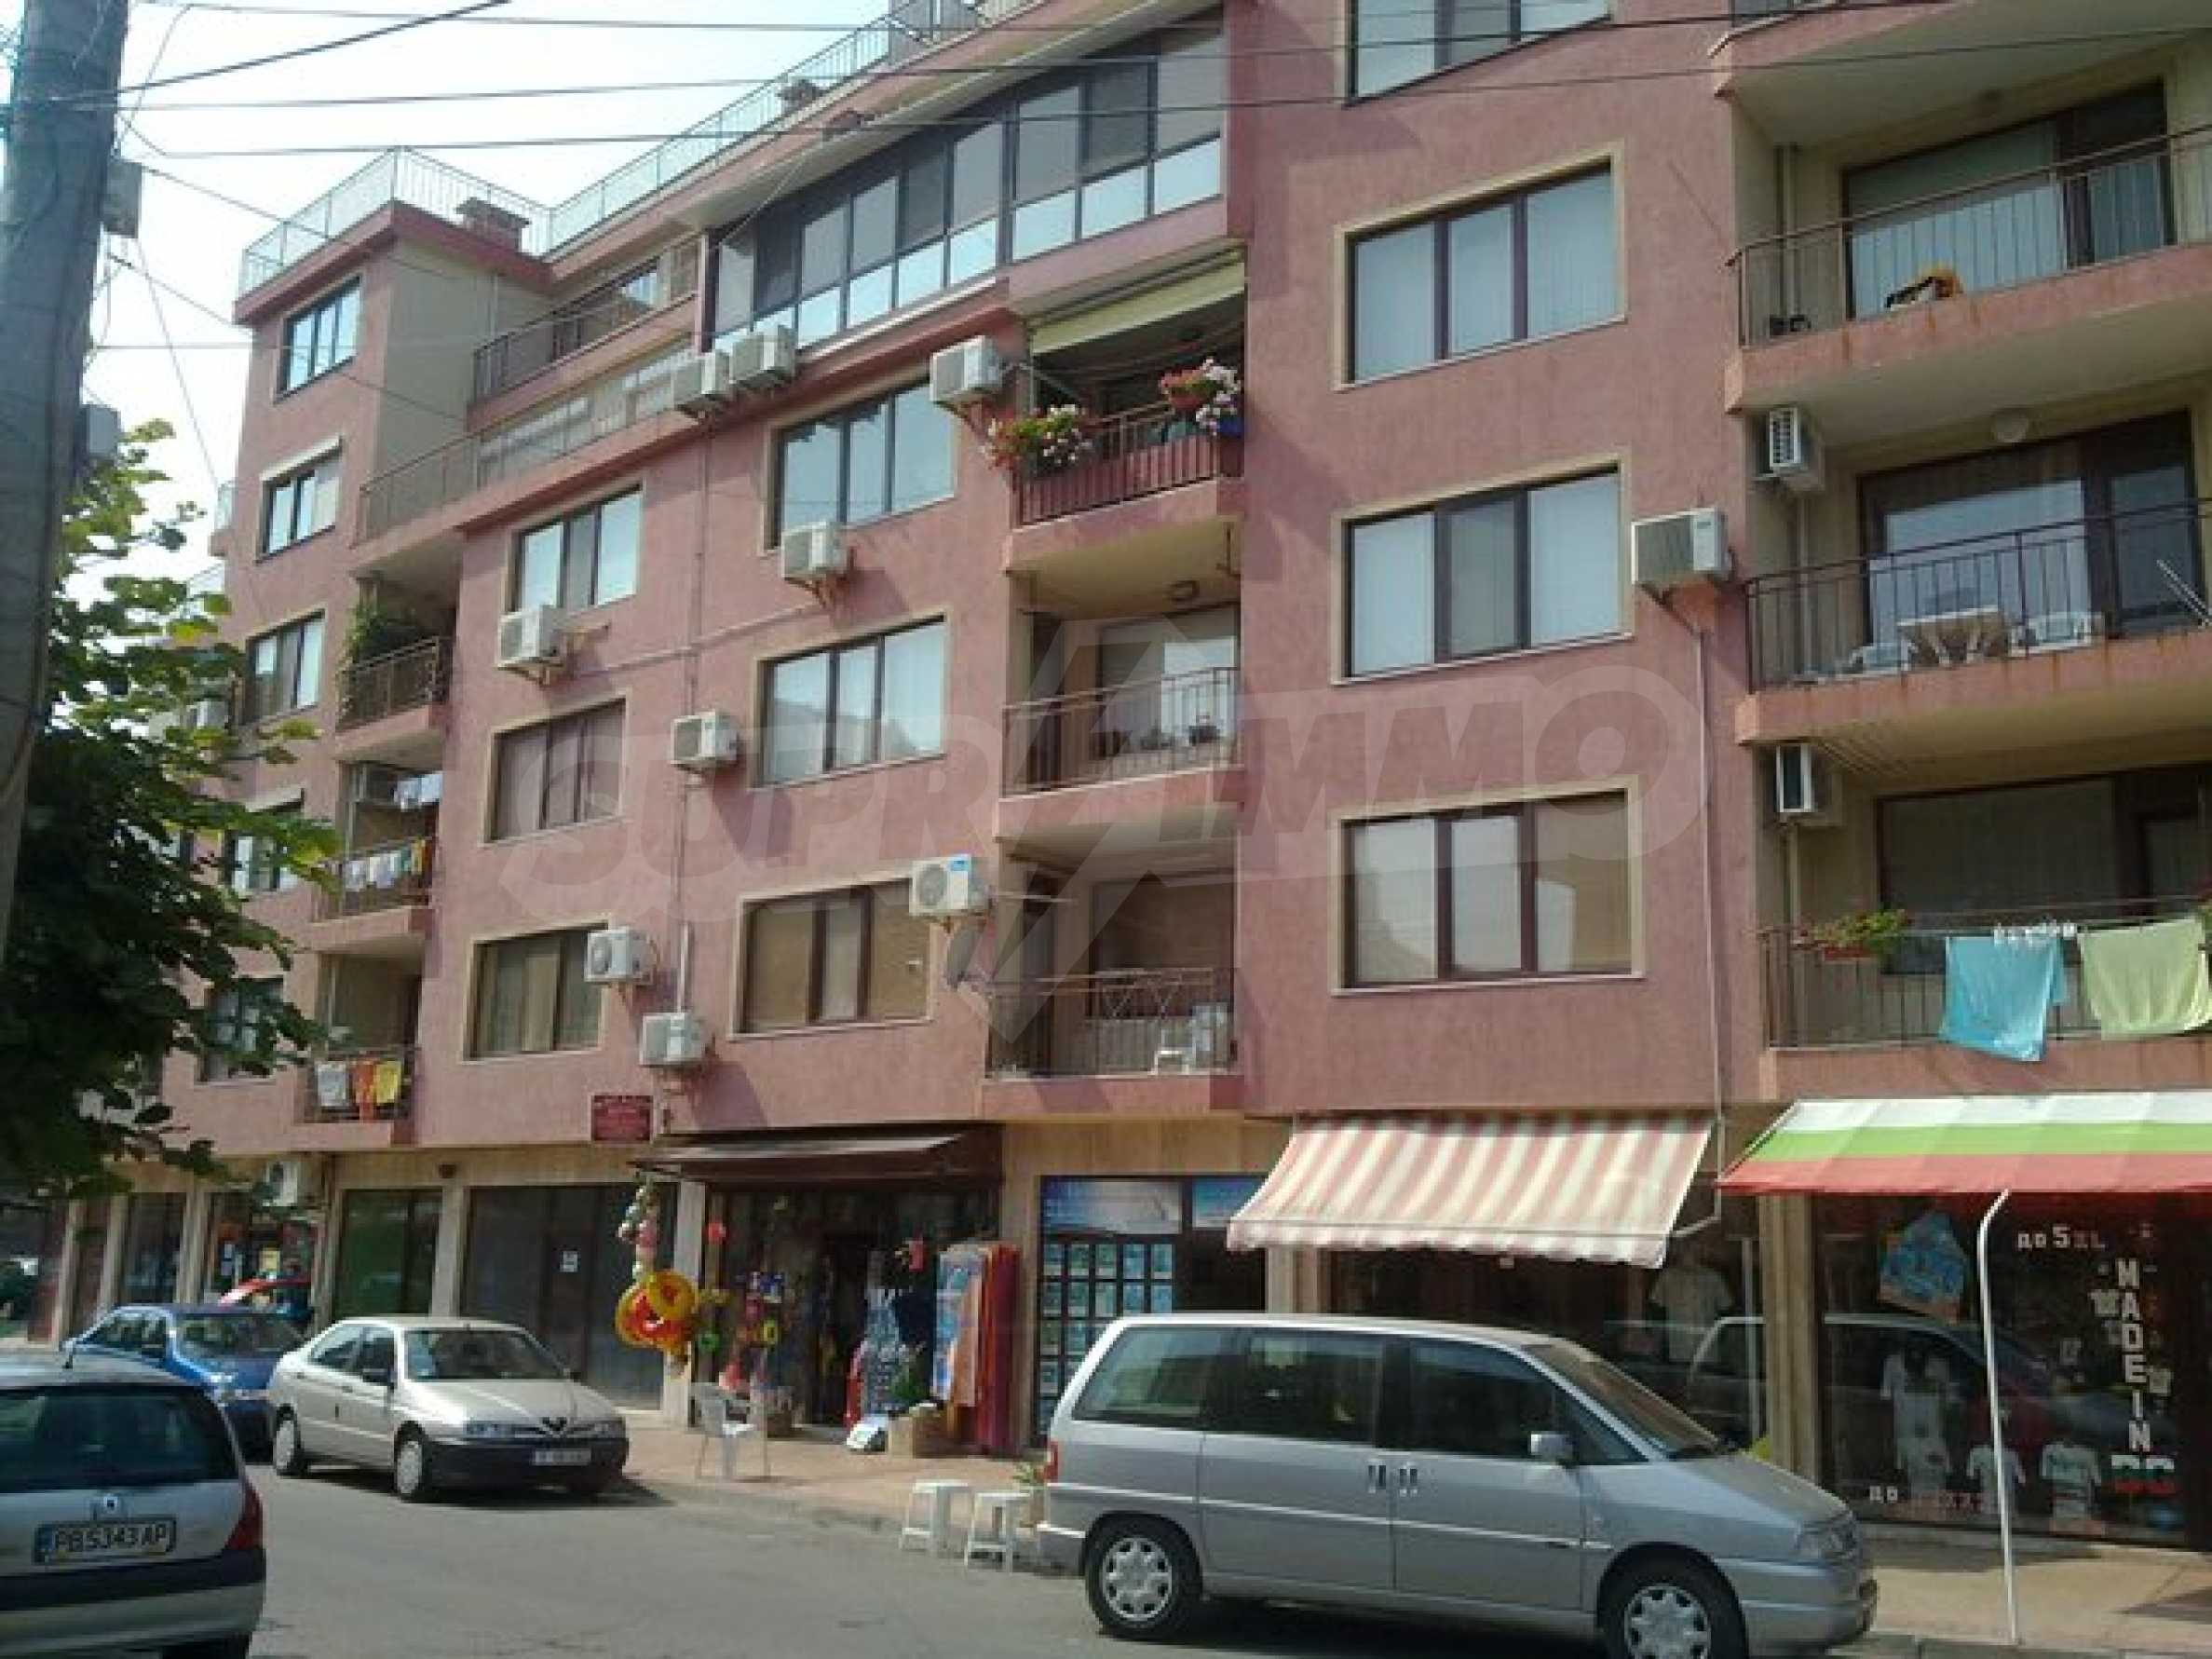 3-bedroom apartment for sale in Pomorie 1